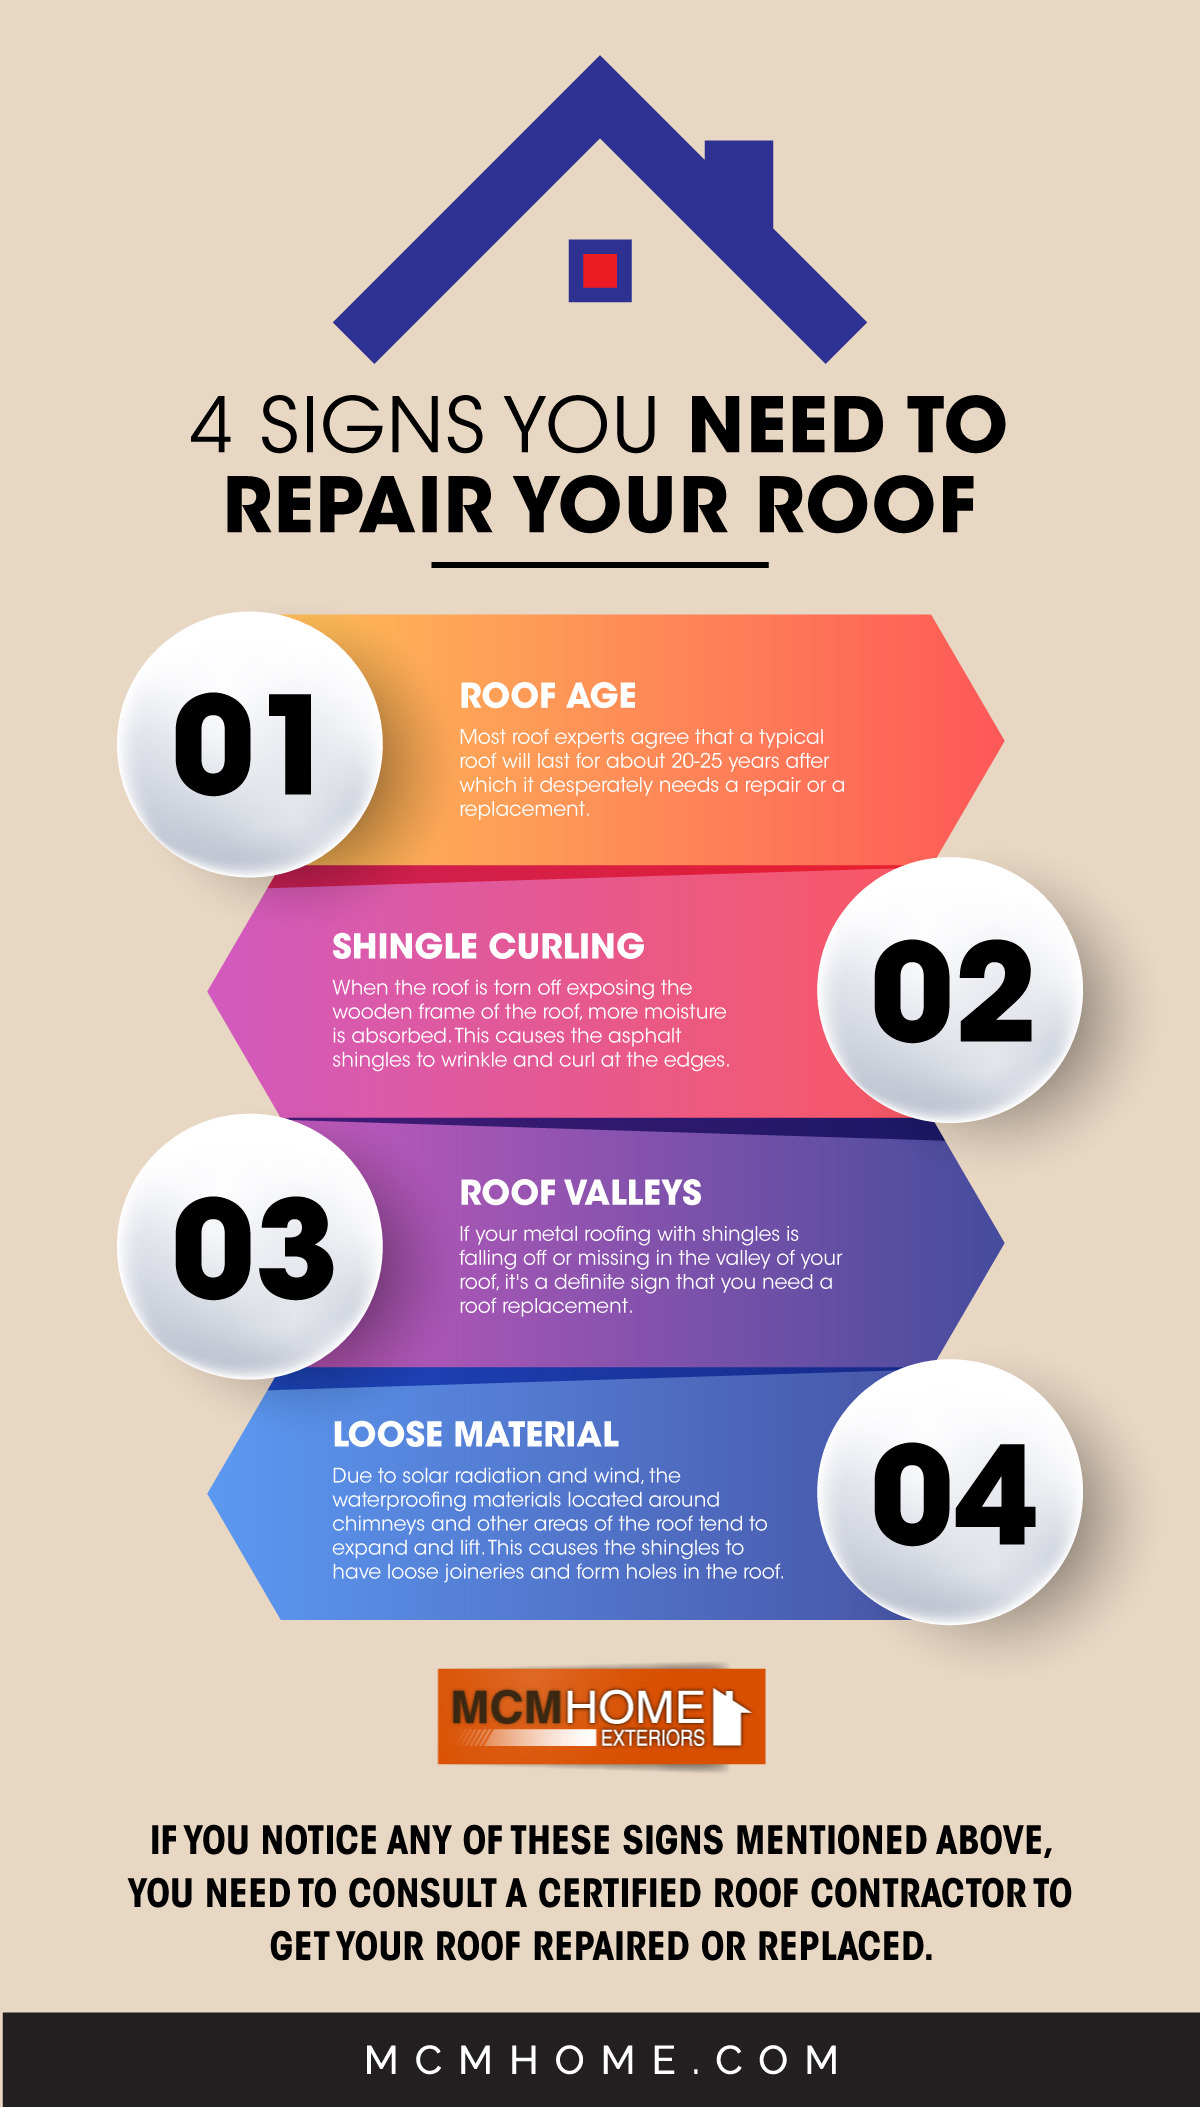 Signs You Need To Repair Your Roof